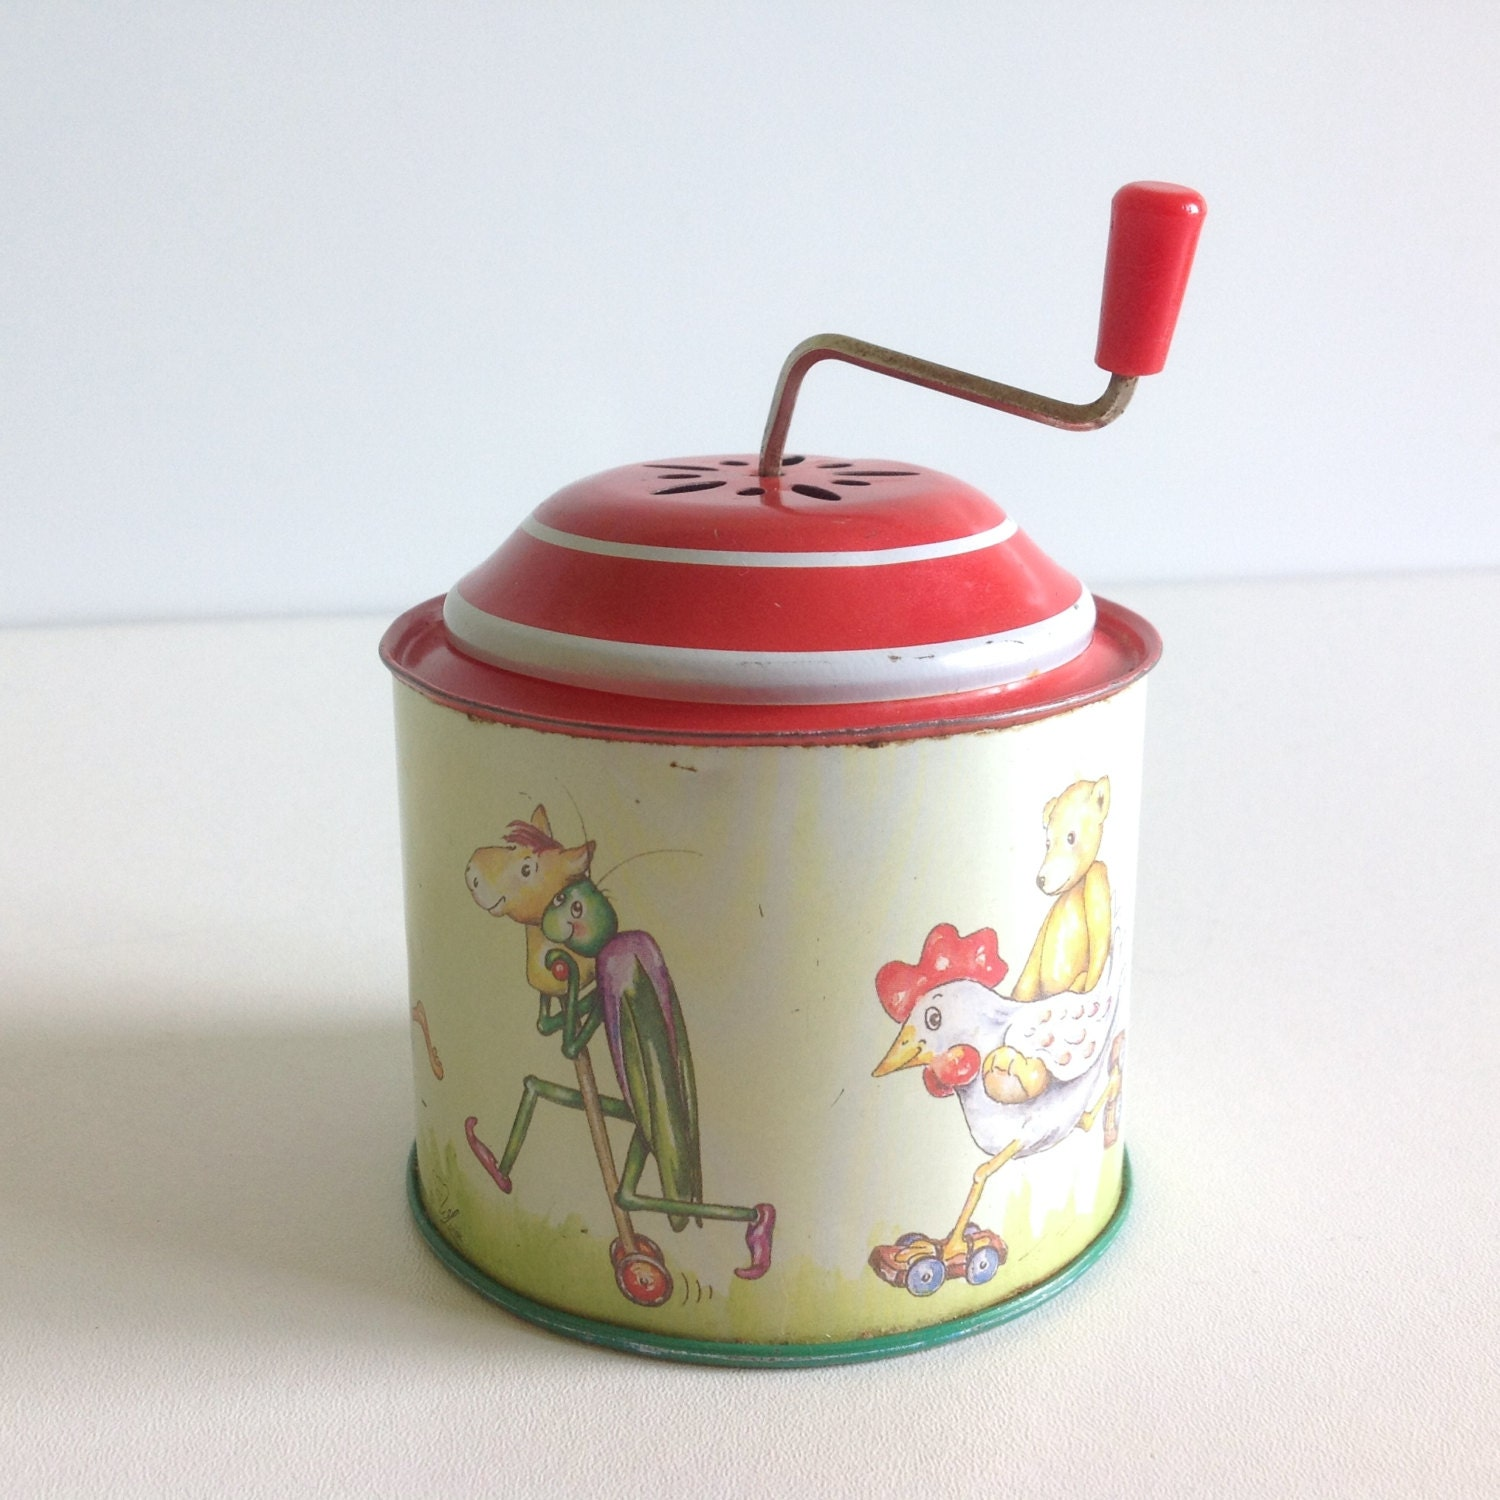 Vintage Musical Toys : Vintage child toy musical